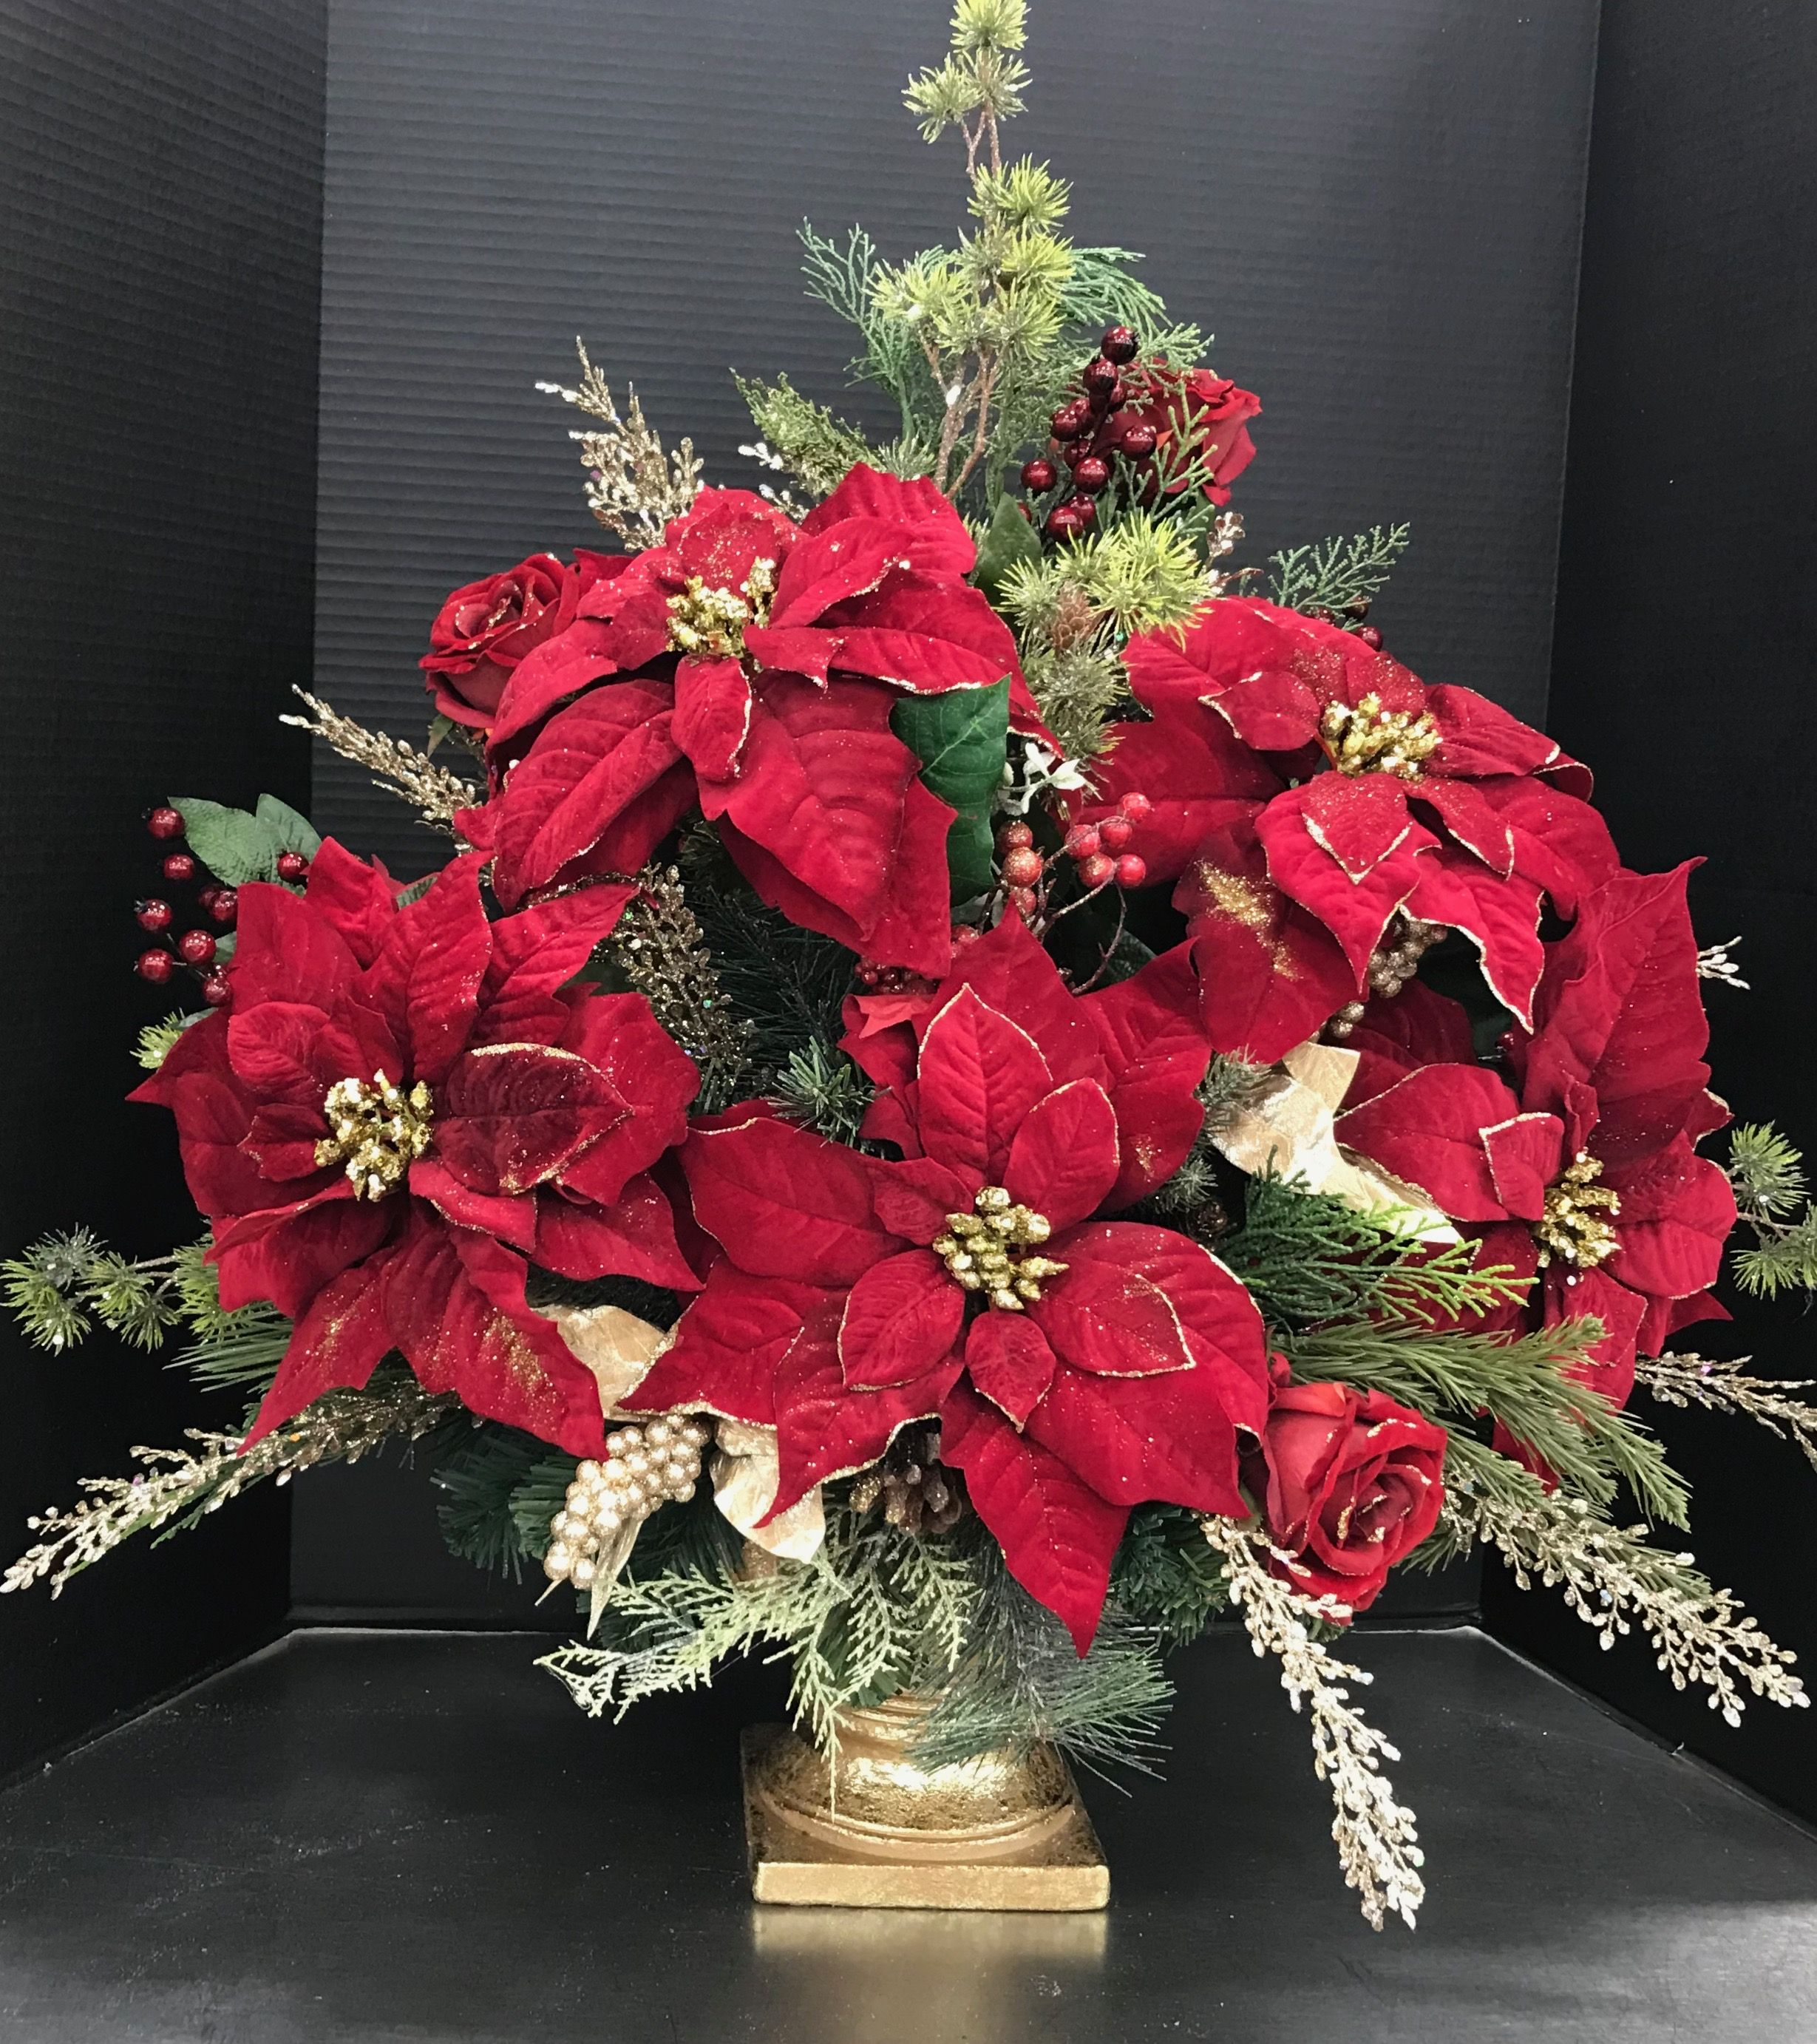 Poinsettia and Gold Urn by Andrea